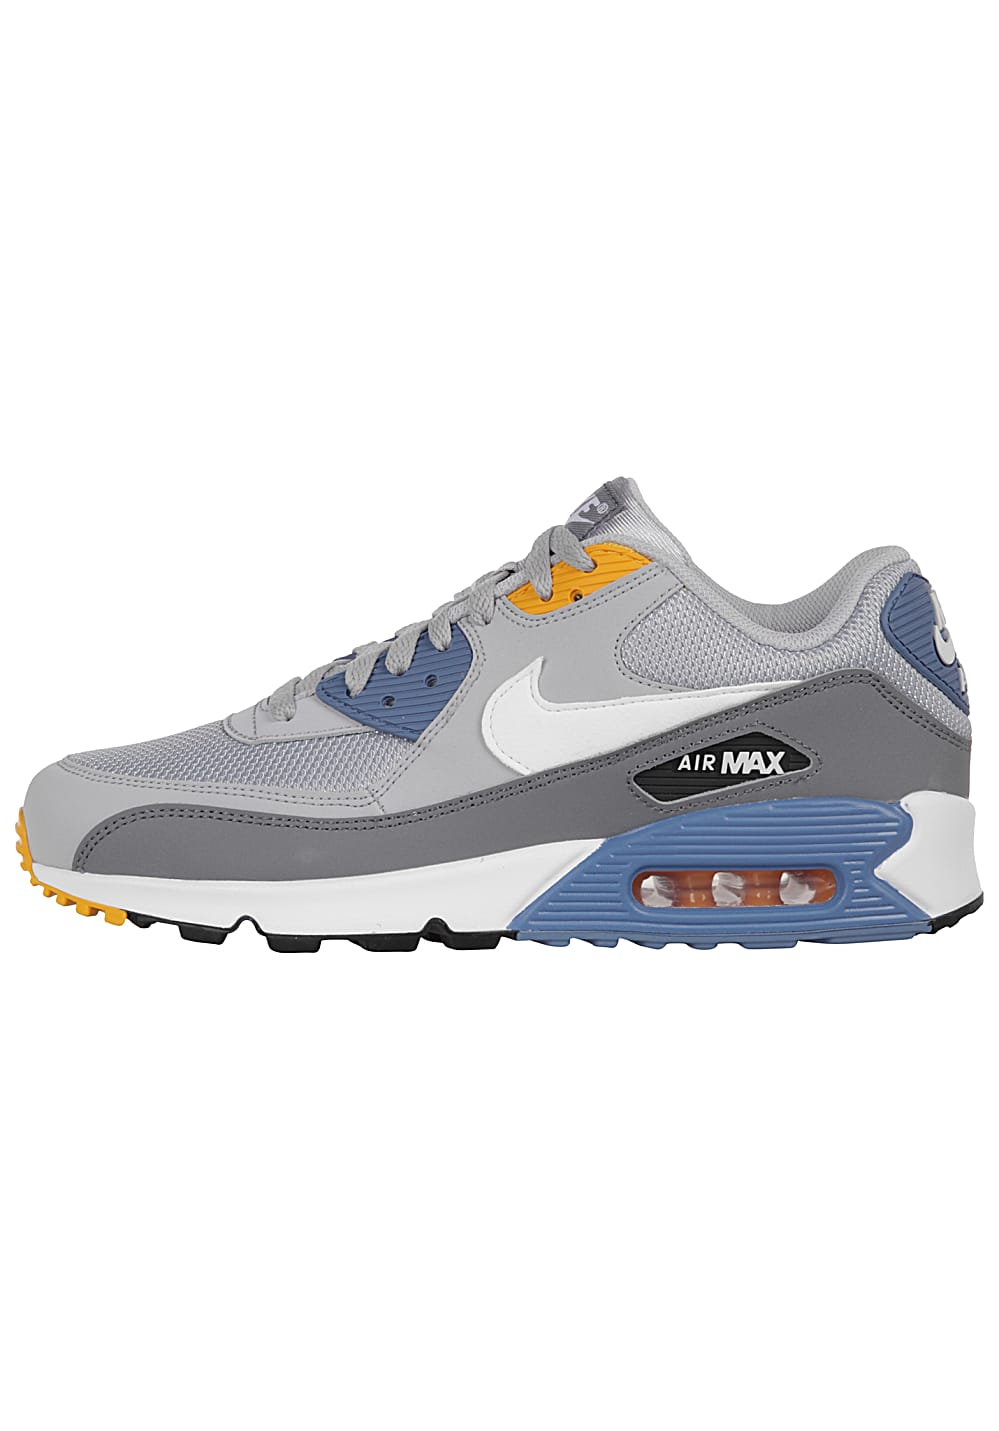 many styles best prices factory authentic NIKE SPORTSWEAR Air Max 90 Essential - Sneakers for Men - Grey ...